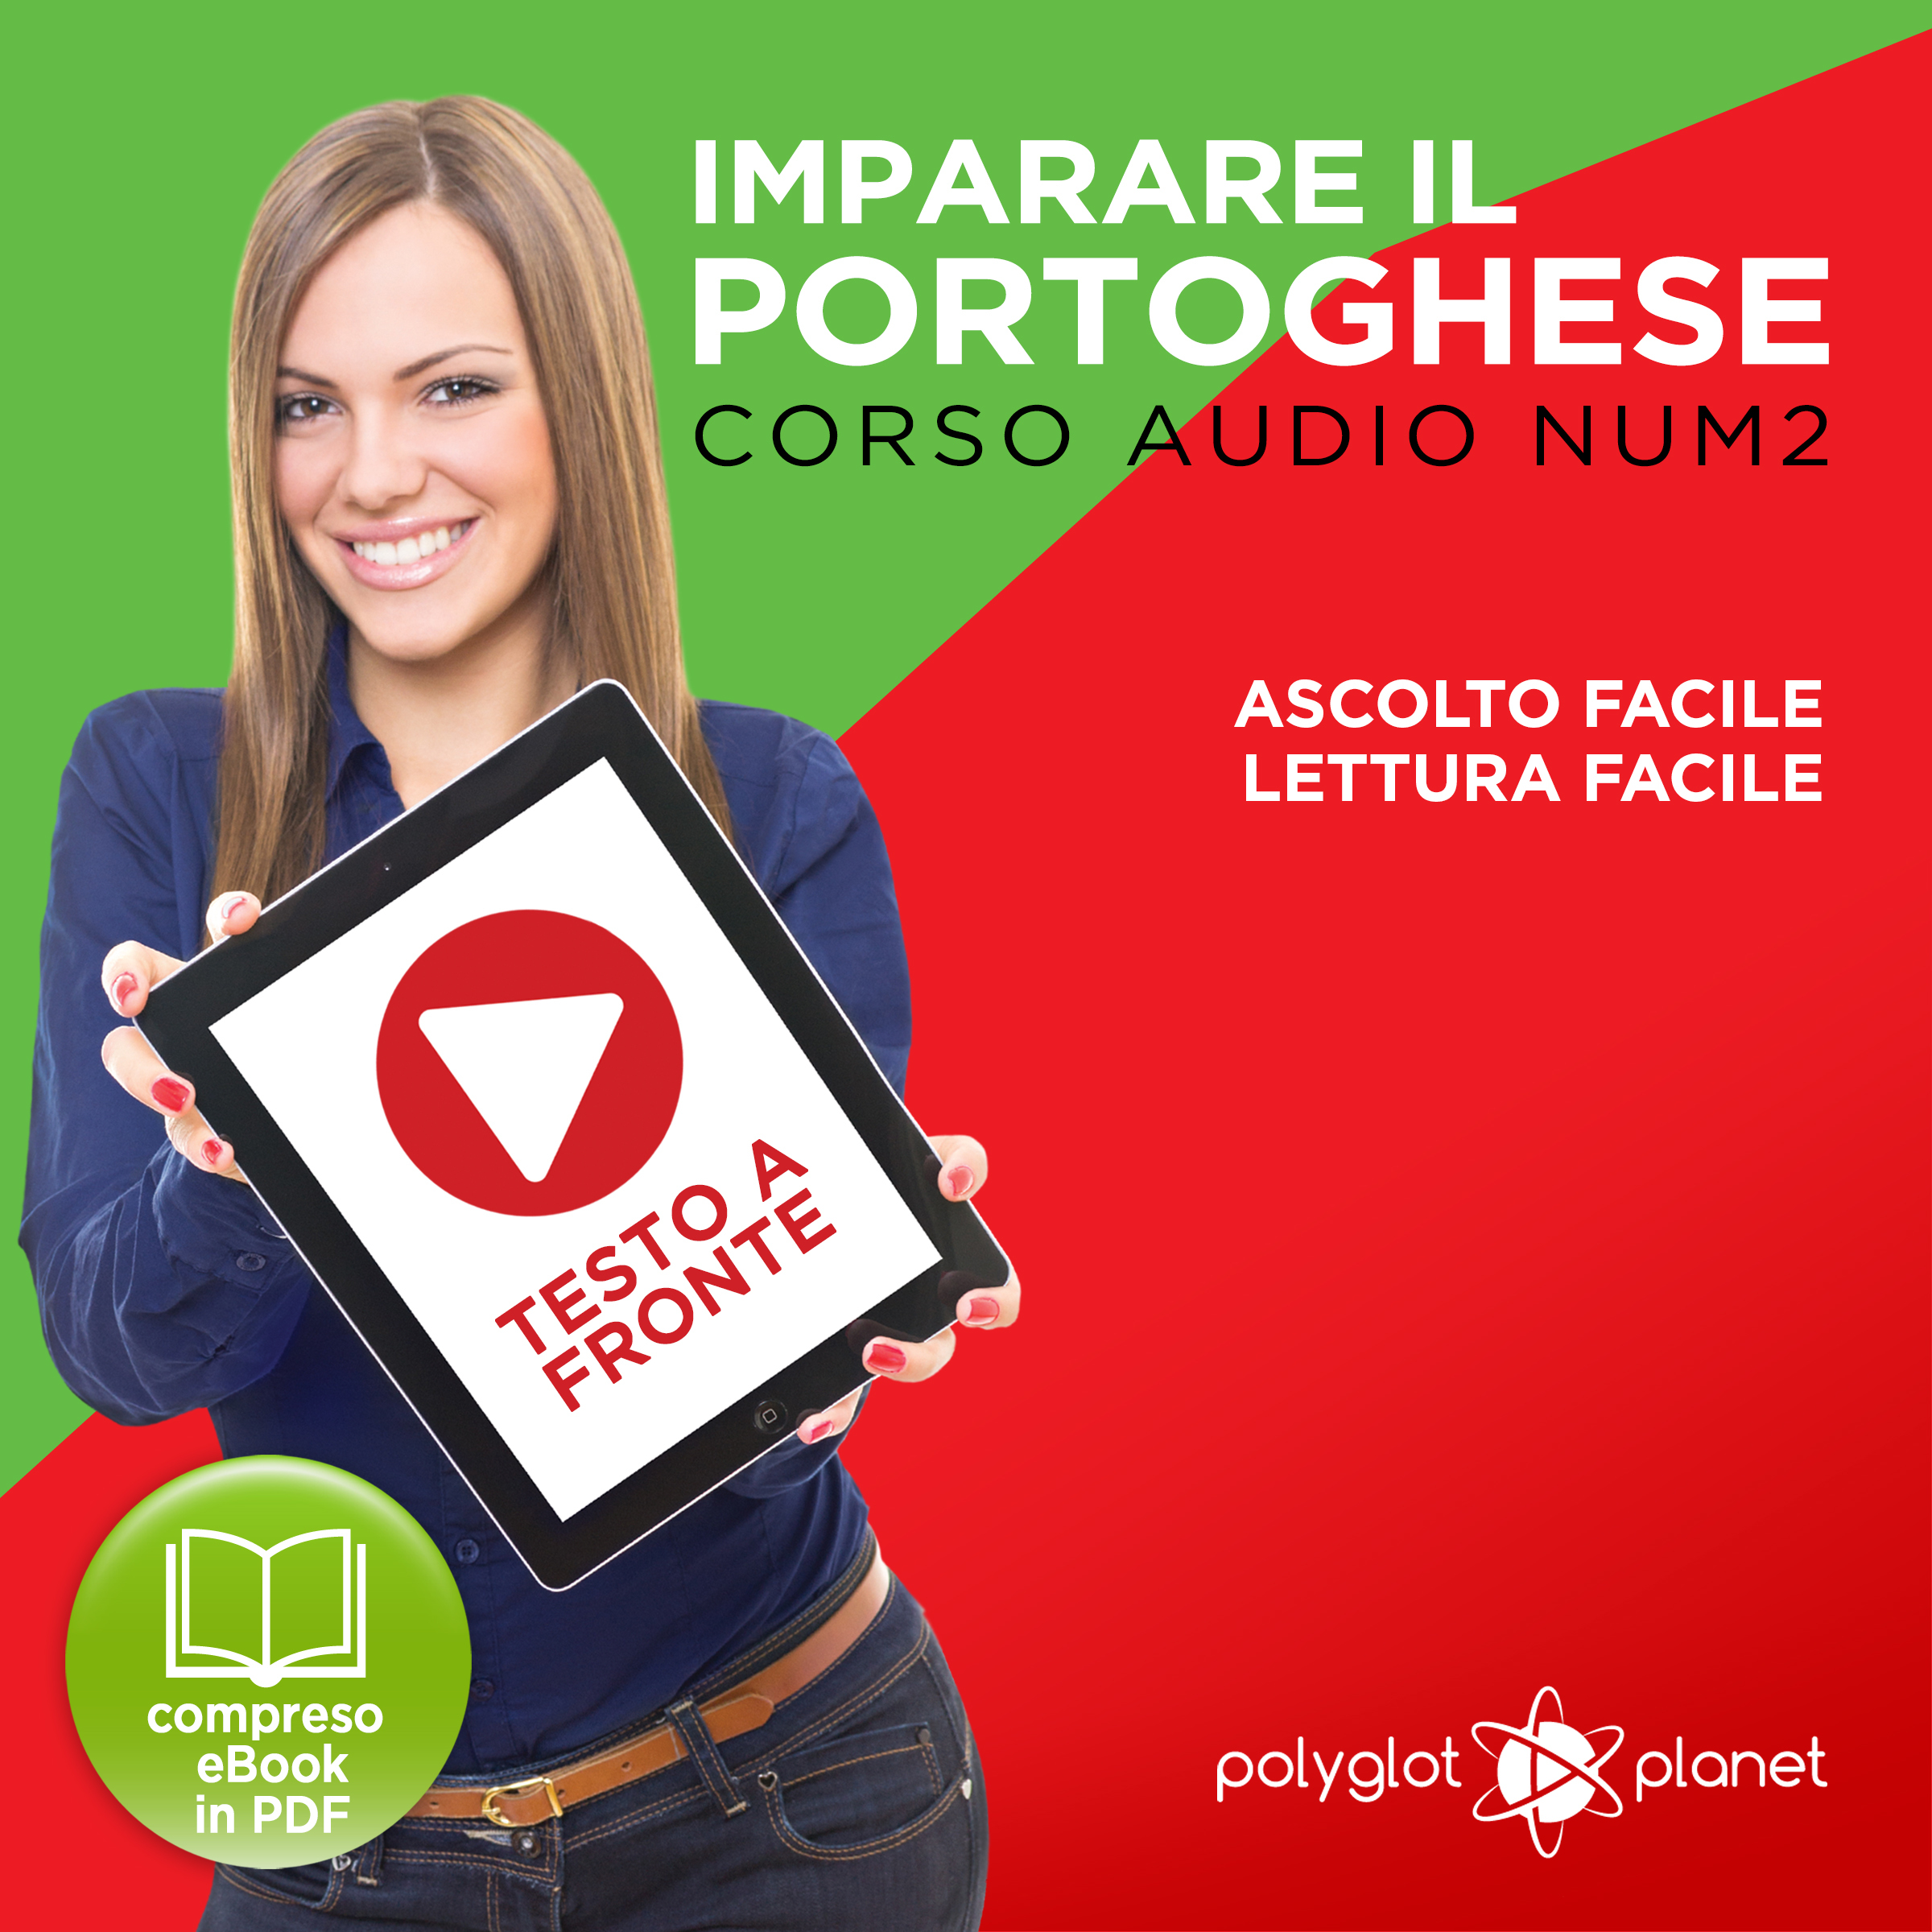 Printable Imparare il Portoghese - Lettura Facile - Ascolto Facile - Testo a Fronte: Portoghese Corso Audio Num.2 [Learn Portuguese - Easy Reader - Easy Audio] Audiobook Cover Art